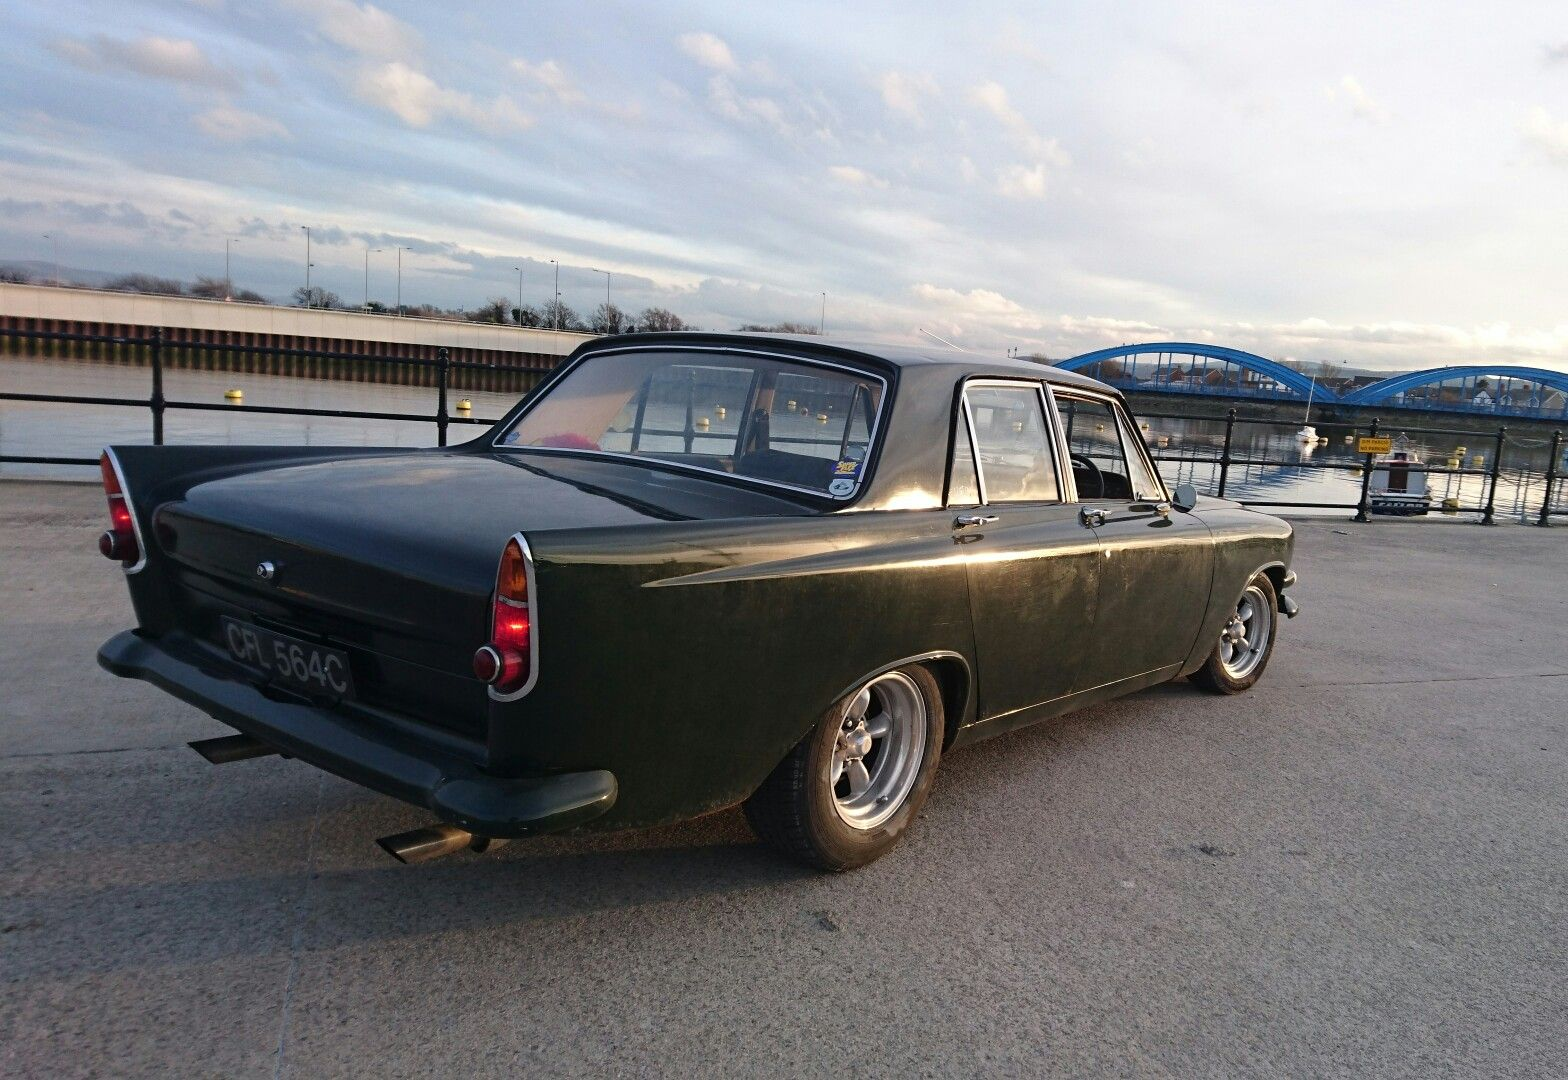 Ford Zephyr Mk3 1965 Classic Cars British Ford Zephyr Classic Cars